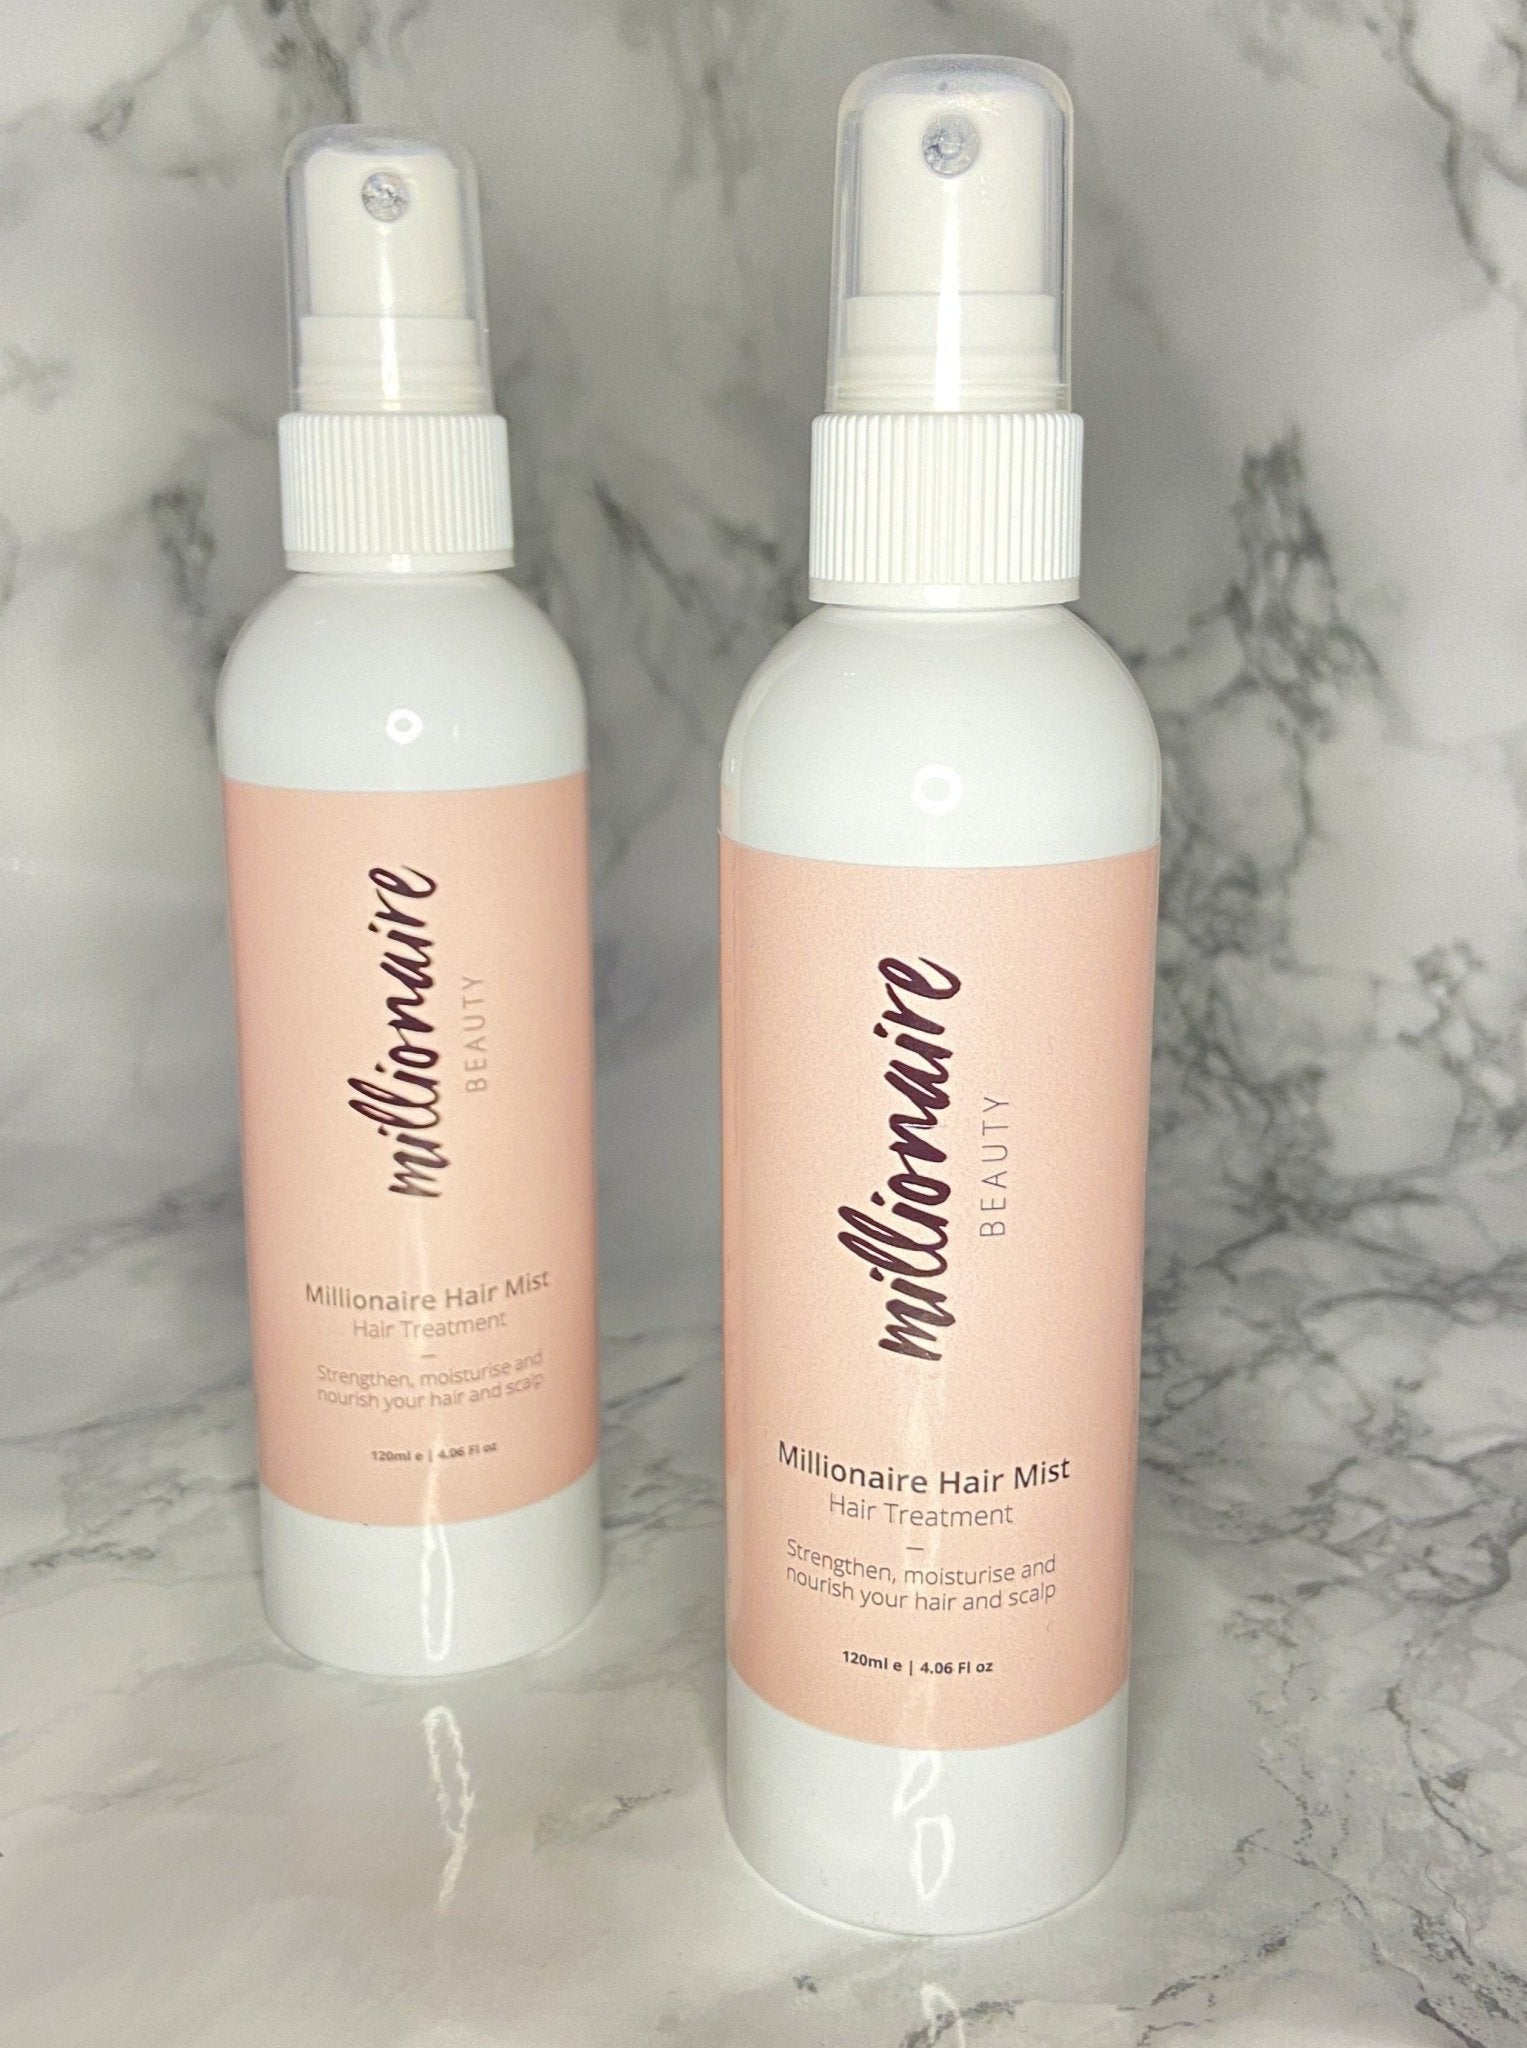 Millionaire Hair Mist - nourishes and strengthens your hair and scalp, Skincare, Millionaire Beauty, Skincare routine, paulas choice, cult beauty, skincare bundle, face serums, night time skincare routine, Morning skincare routine, hairmist. hair mist, hair treatment